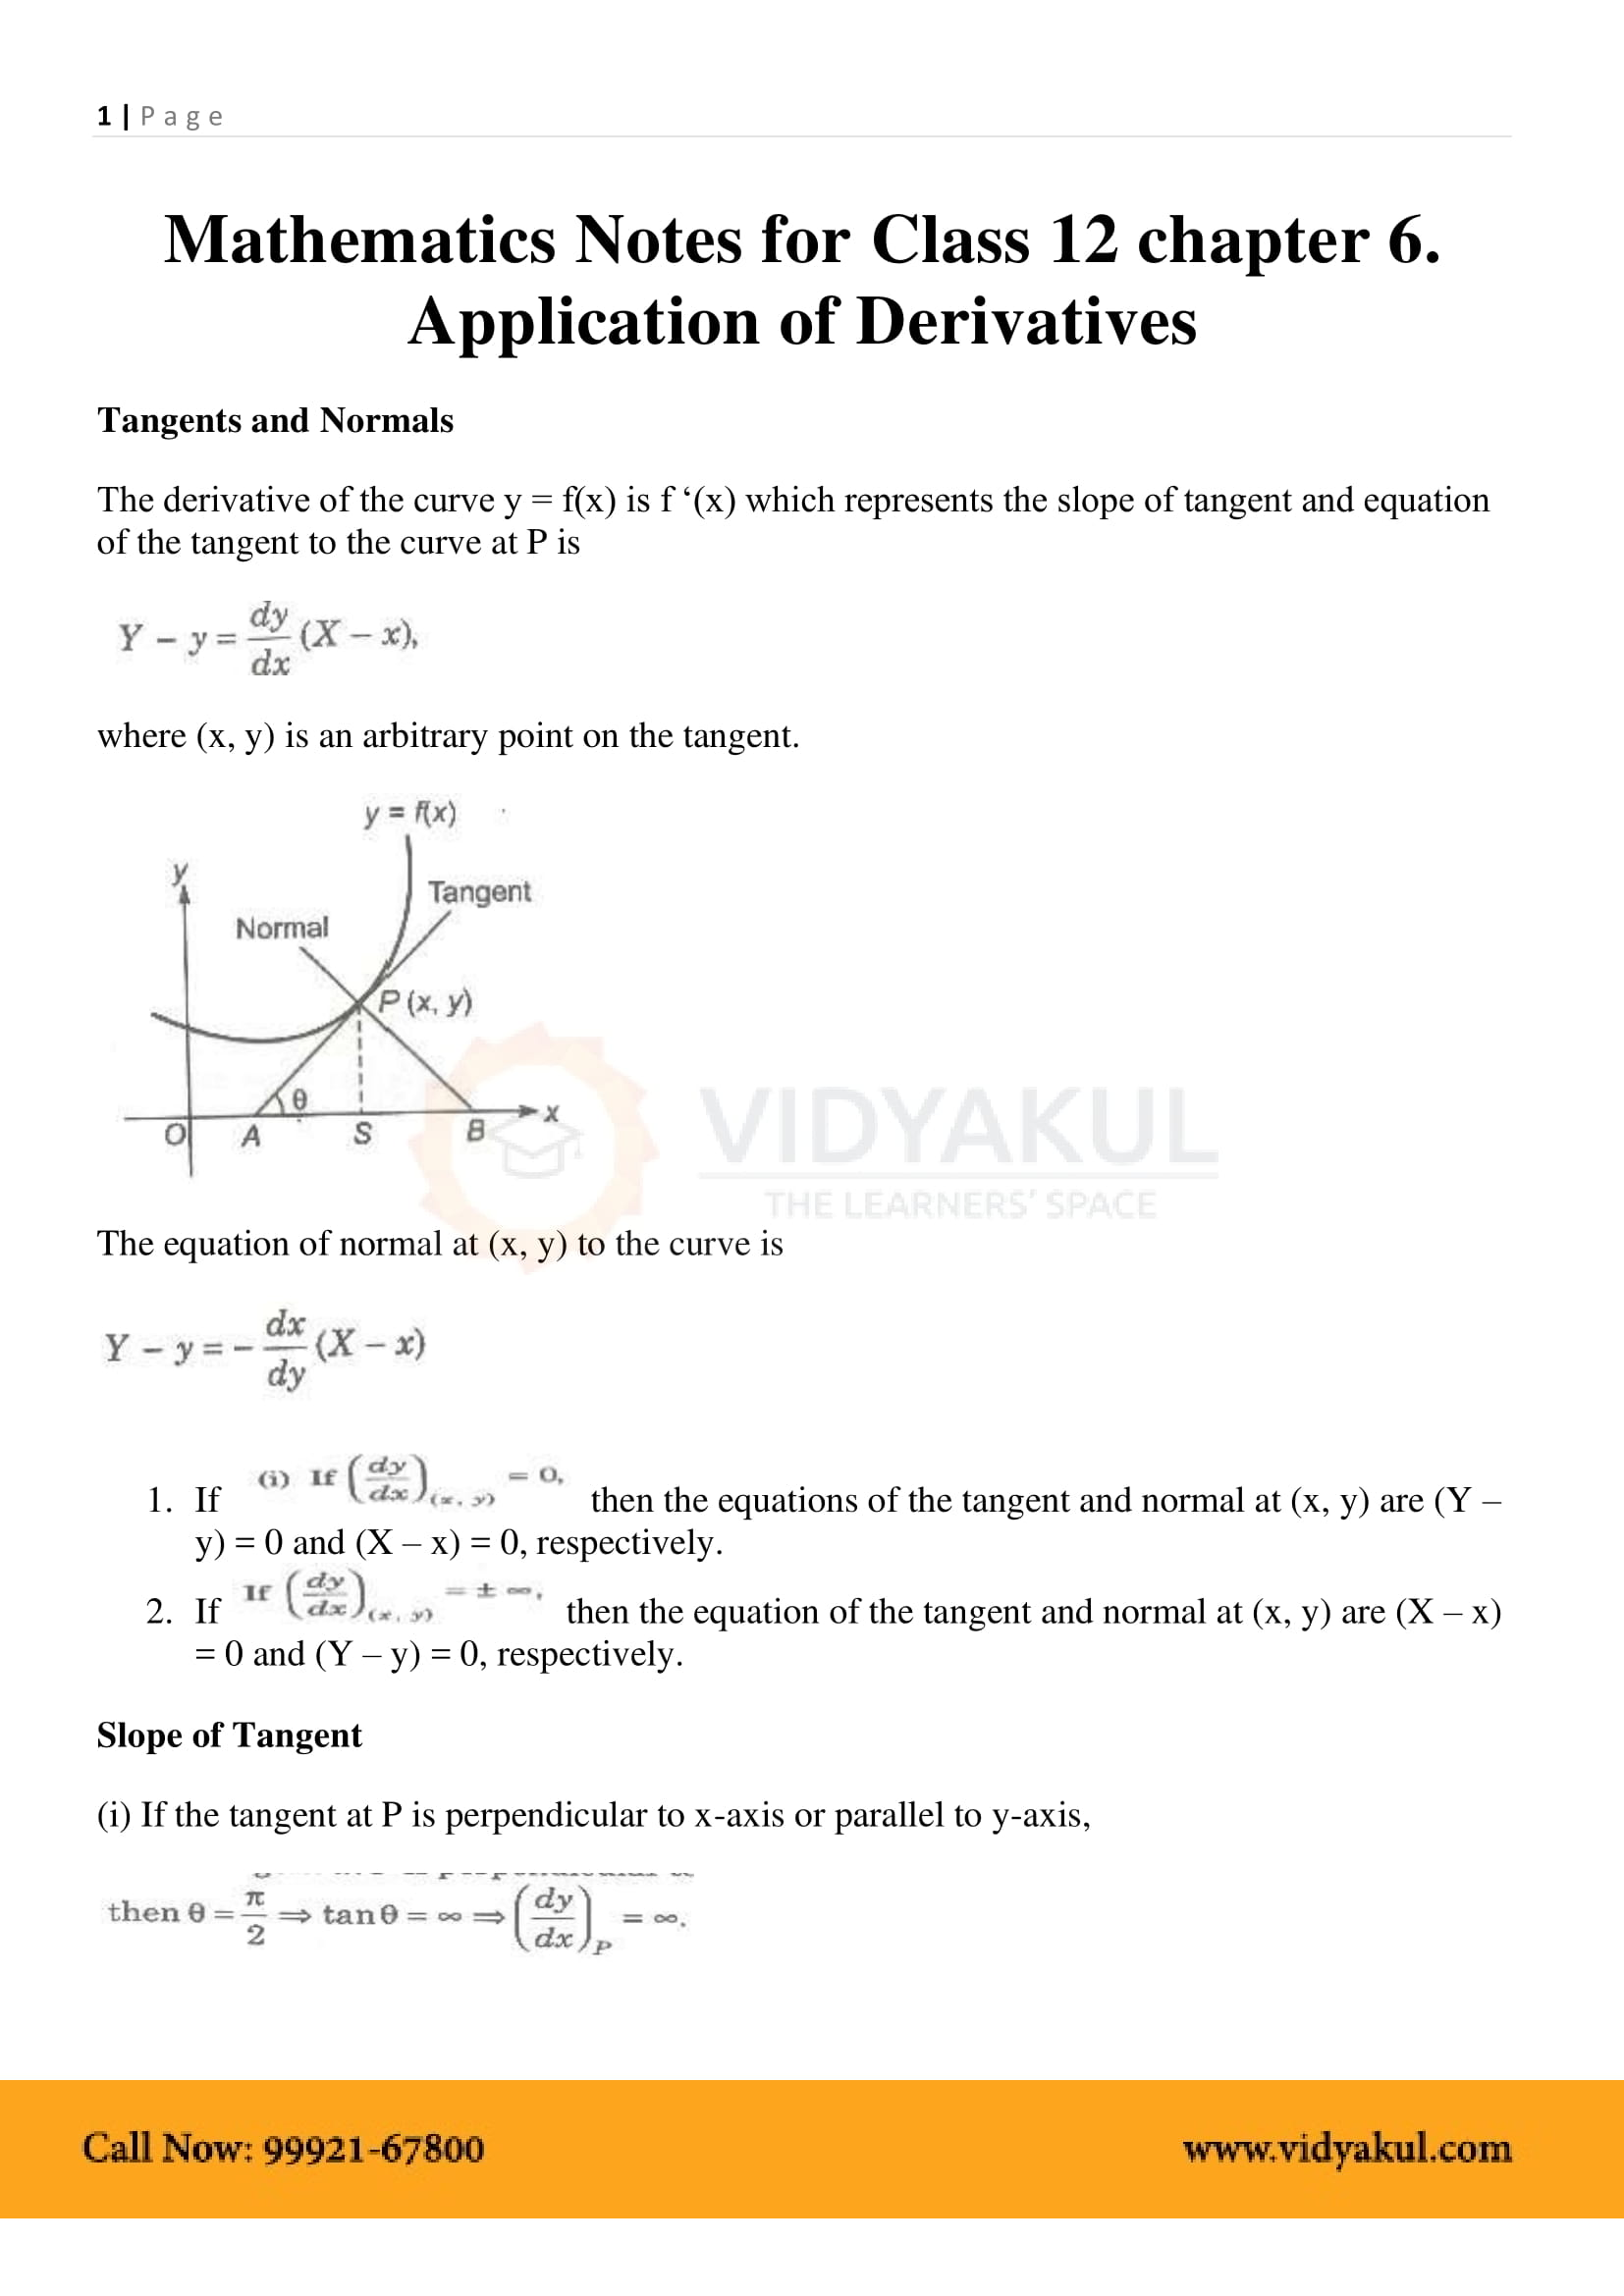 Application of Derivatives Class 12 Notes | Vidyakul